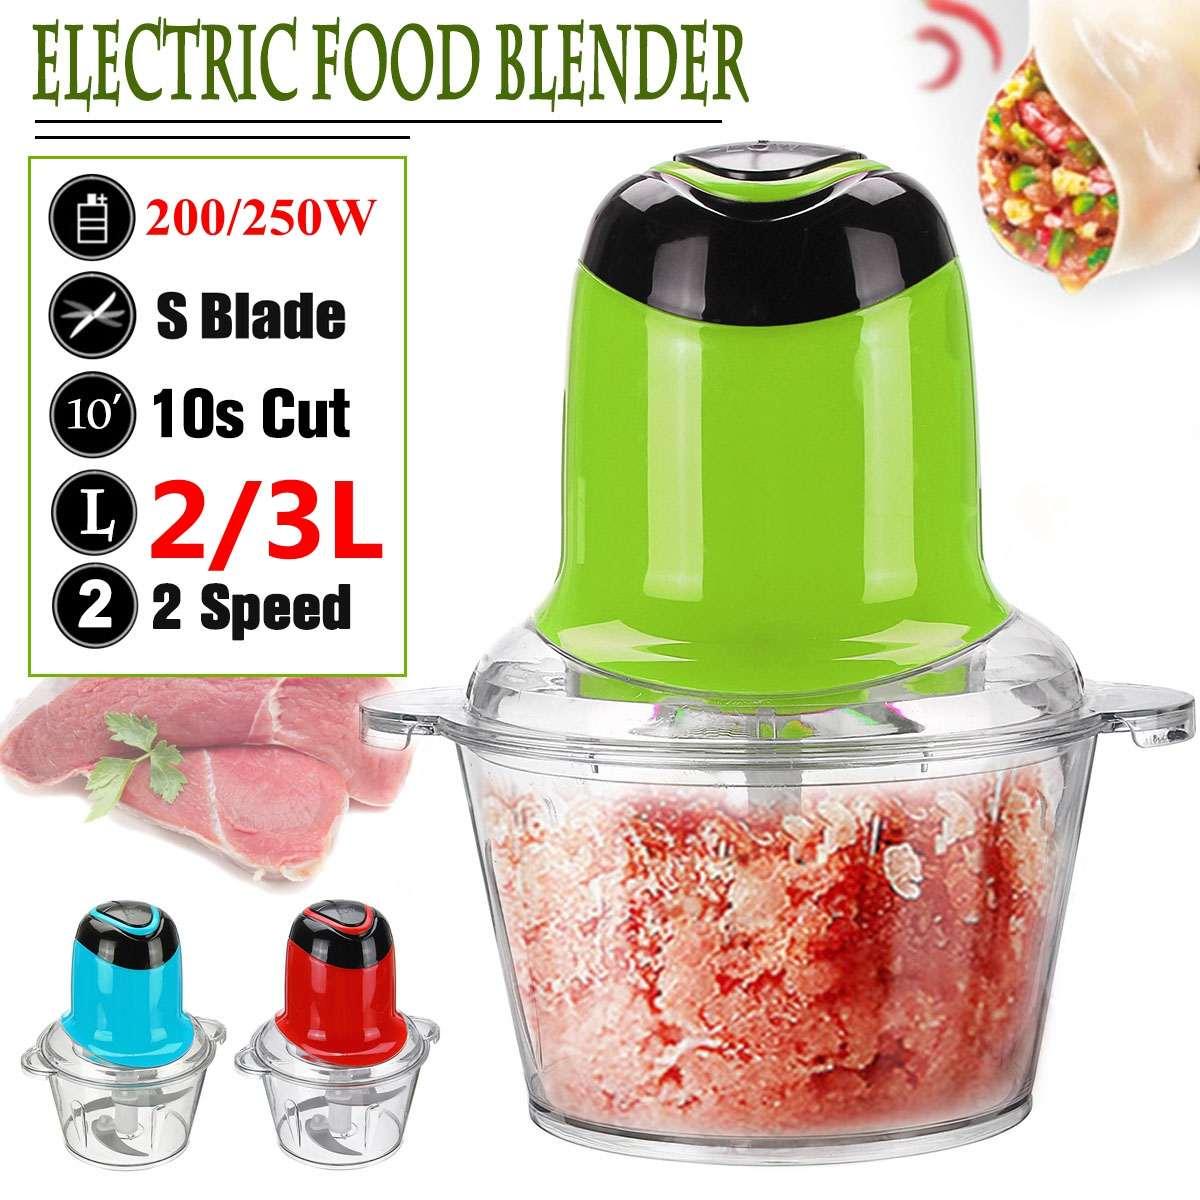 Meat Grinder 2/3L 200/250W Electric Kitchen Meat Grinder Chopper Food Chopper Stainless Steel Electric Household Kitchen Tools